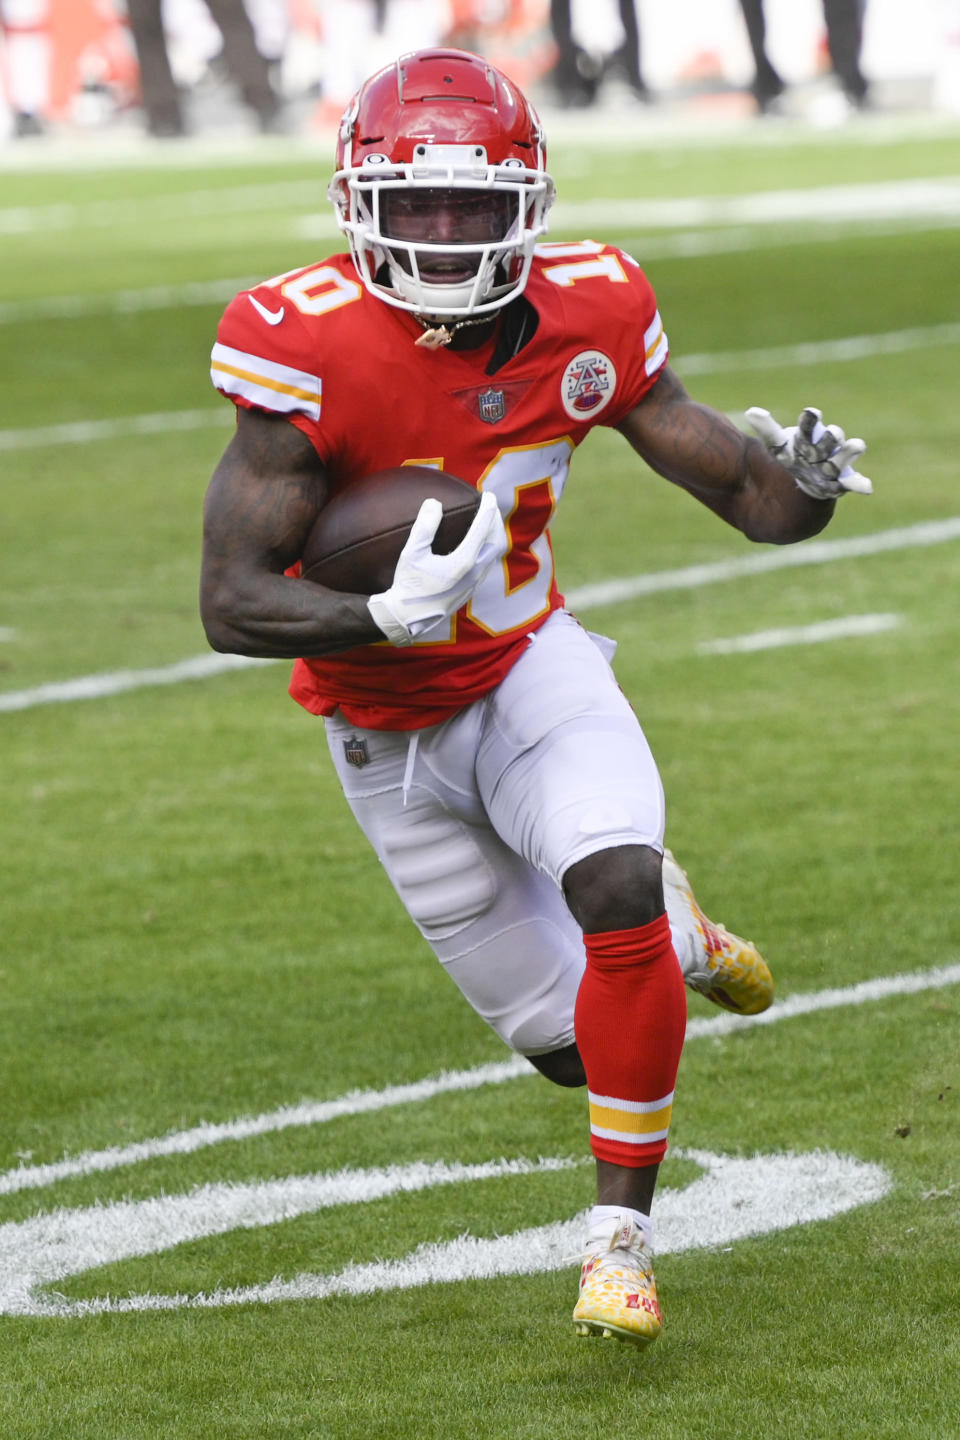 FILE - In this Jan. 17, 2021, file photo, Kansas City Chiefs wide receiver Tyreek Hill (10) runs against the Cleveland Browns during the NFL divisional round football game in Kansas City, Mo. Hill wants to be the Super Bowl halftime show. Hill said Monday, Feb. 1, 2021, hed be willing to race Tampa Bay receiver Scotty Miller during intermission at Raymond James Stadium on Sunday. (AP Photo/Reed Hoffmann, File)